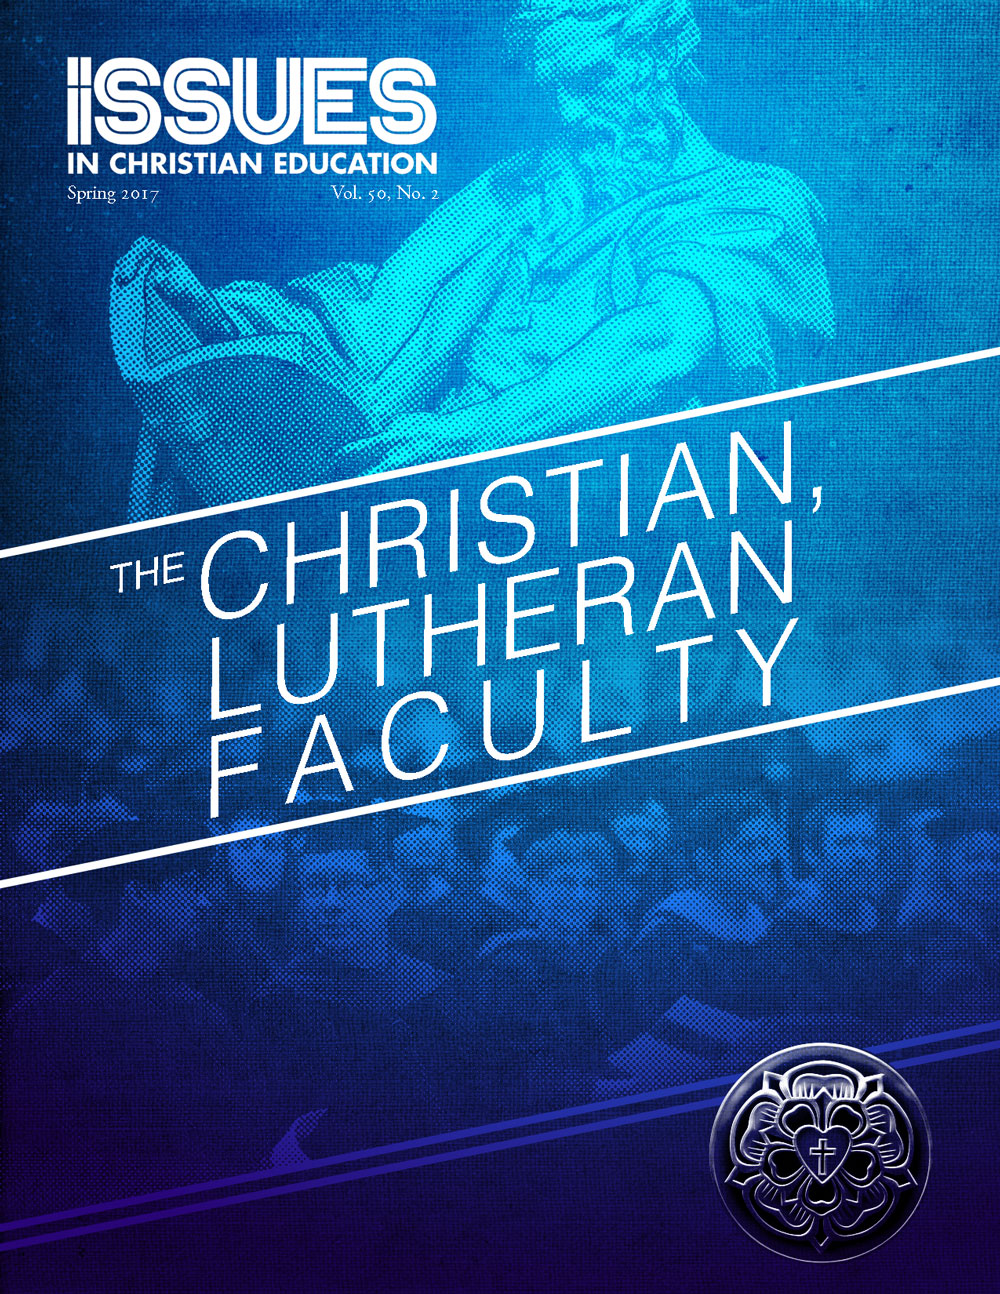 The Christian, Lutheran Faculty